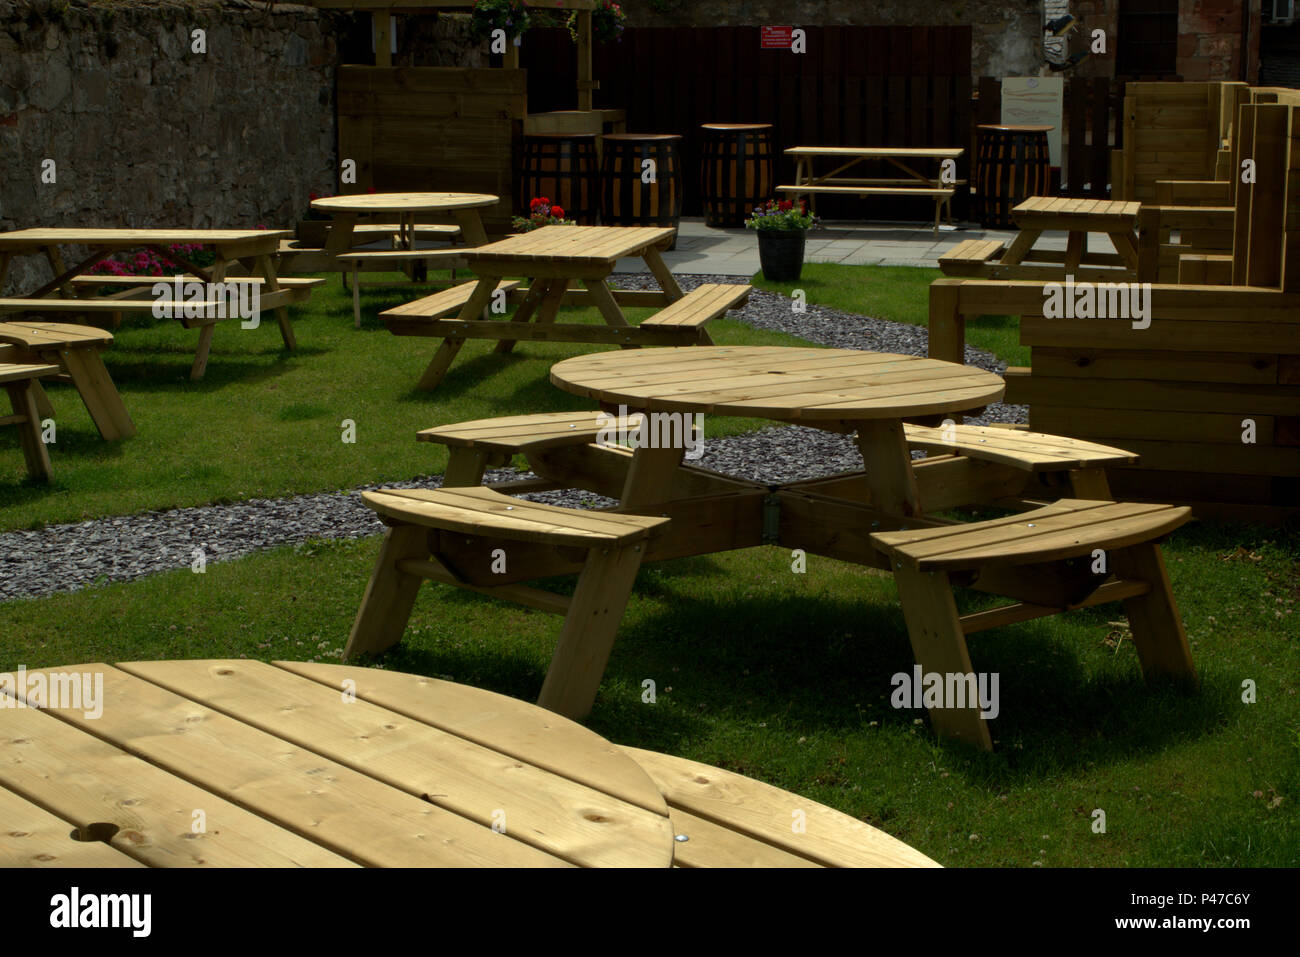 Pub Garden Furniture High Resolution Stock Photography and Images